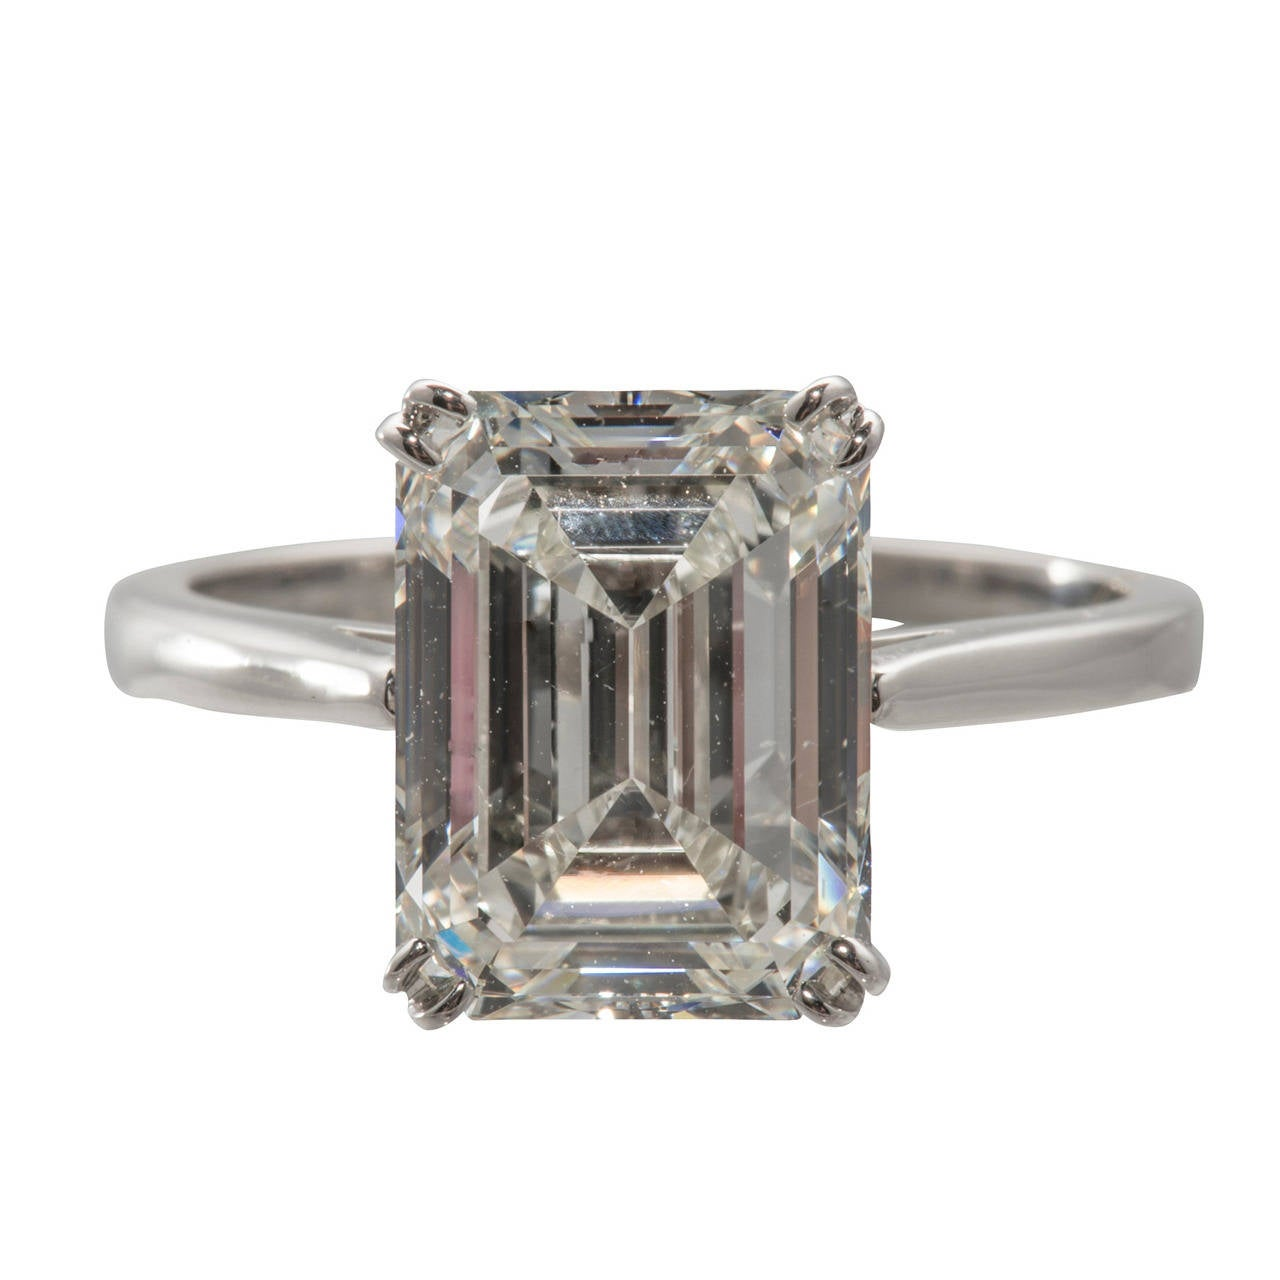 gia cert 4.12 carat emerald cut diamond engagement ring for sale